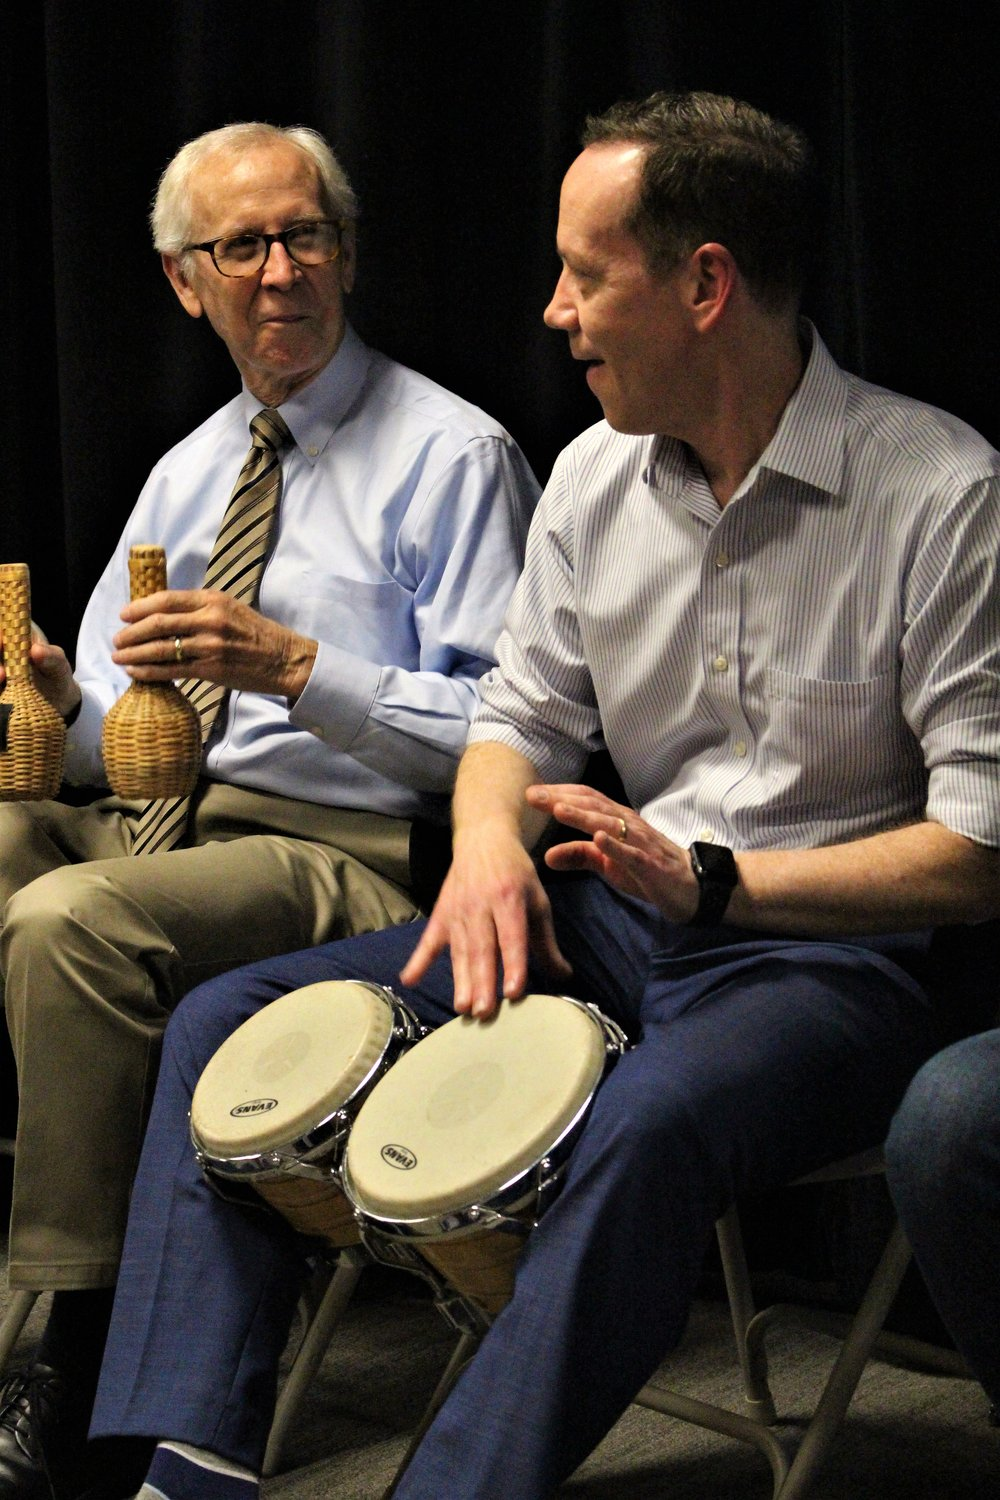 Exploring Percussion Instruments From Around The World with Joe Connell